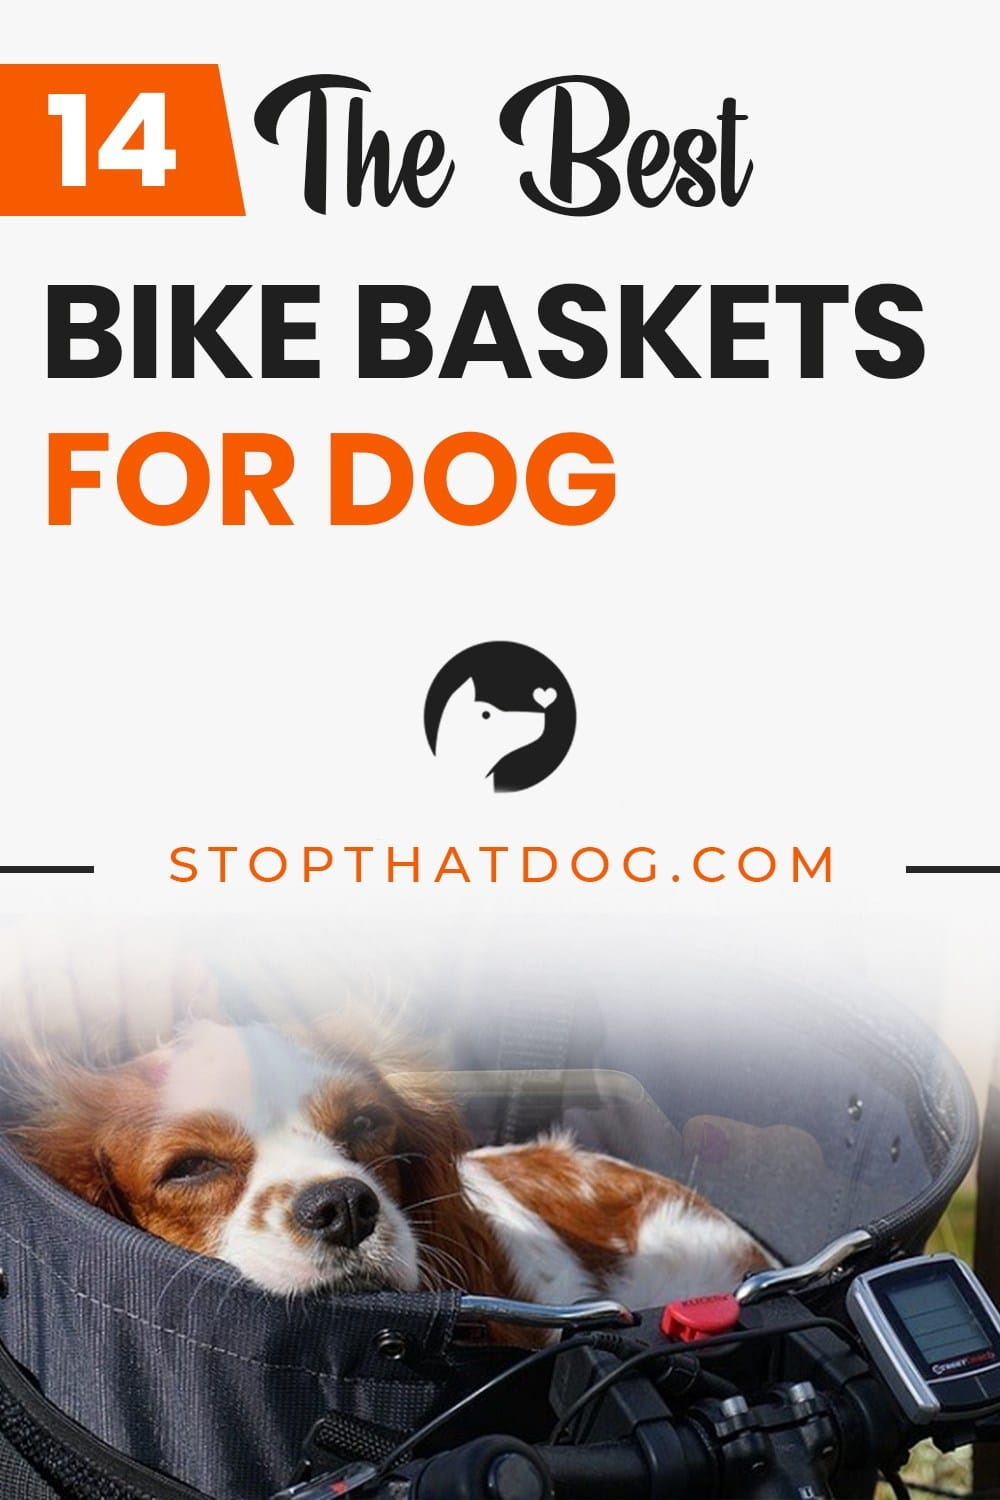 What Are The Best Bike Baskets For Dogs In 2020? Here's An In-Depth Guide